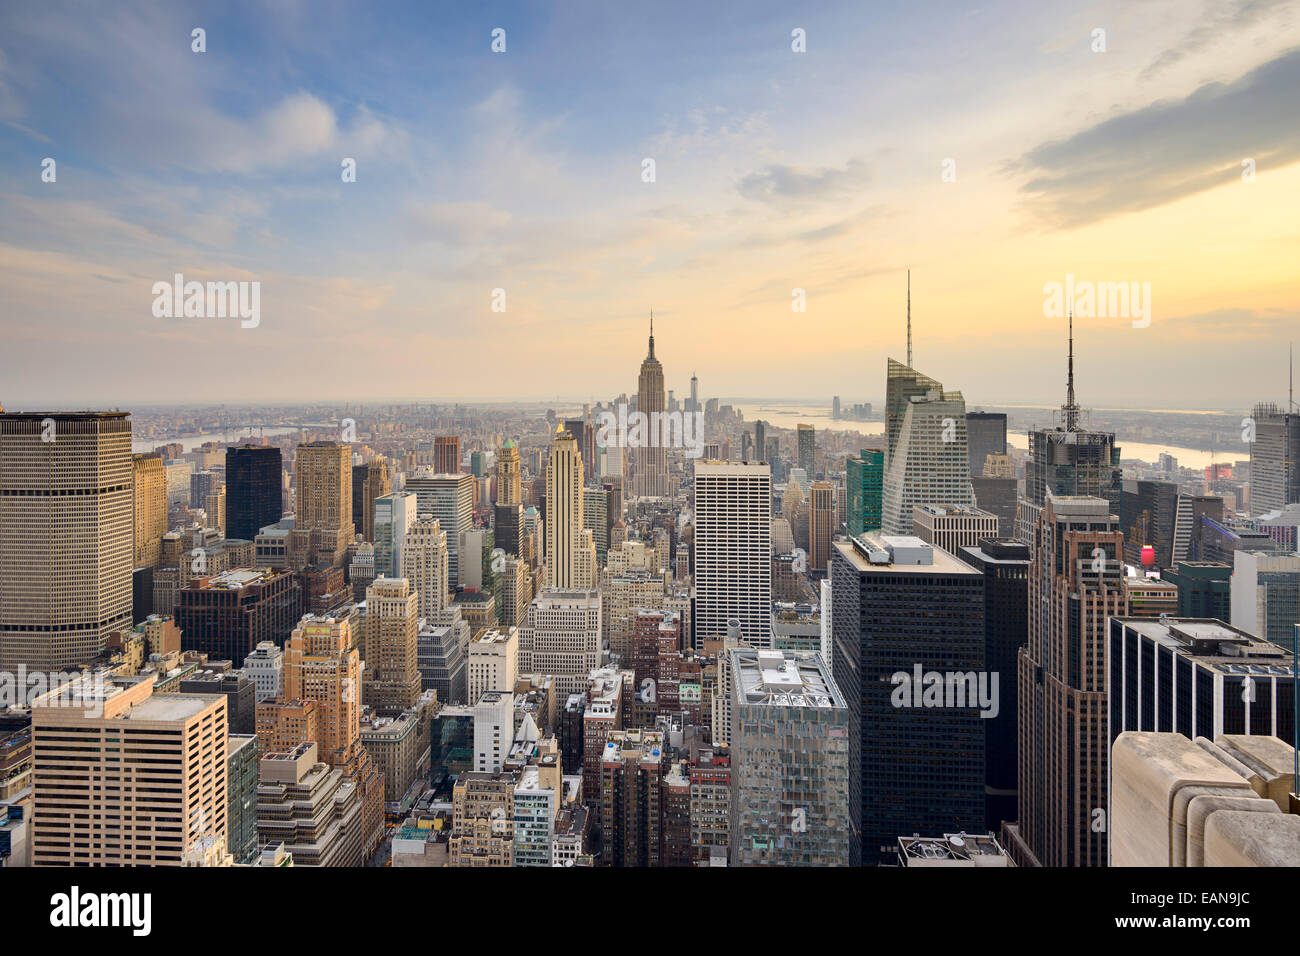 New York City, USA city skyline of midtown Manhattan. - Stock Image